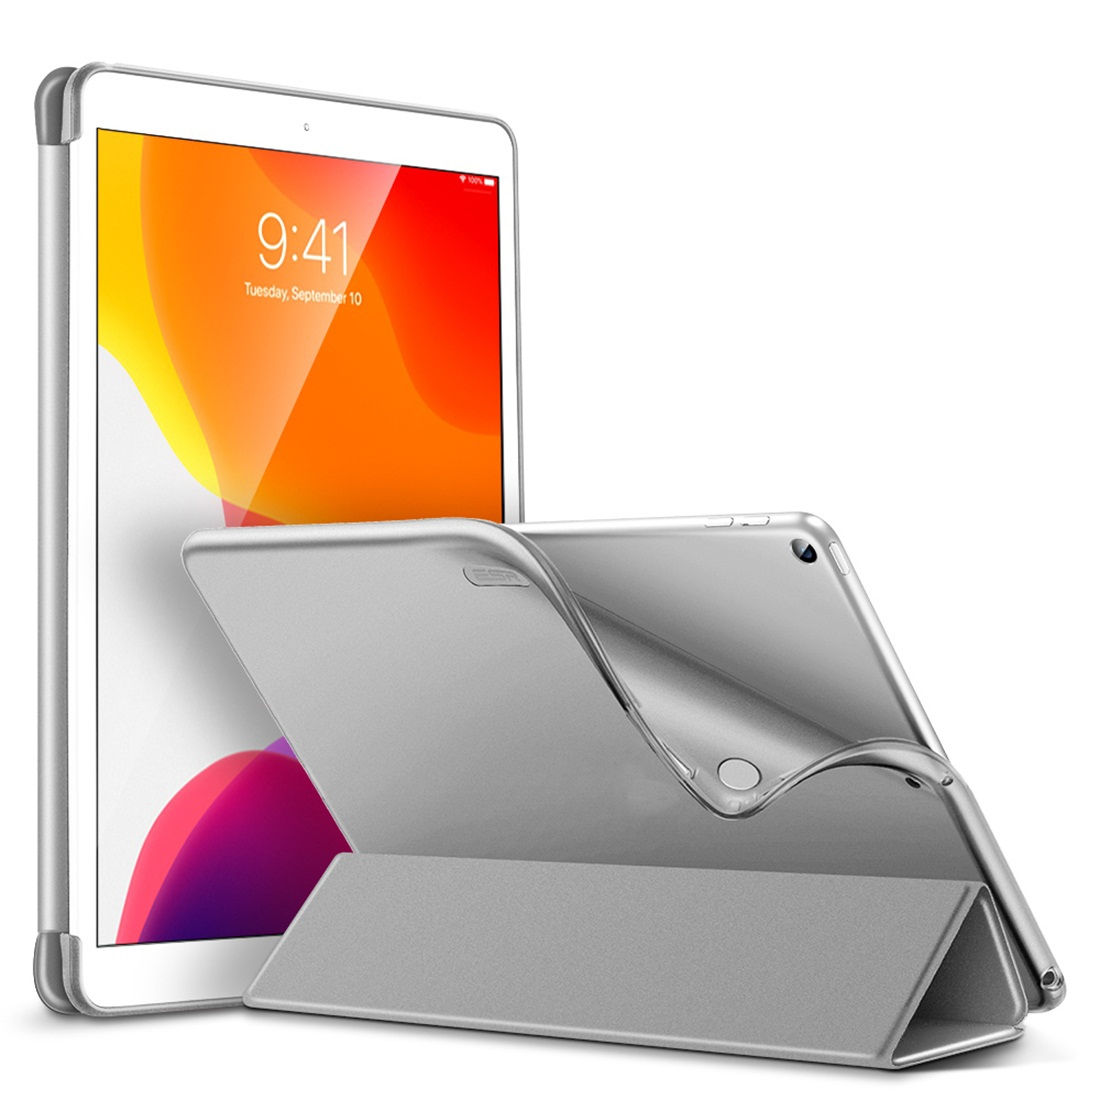 iPad 7th Generation Case (10.2 Inch) Features A Designer Style Leather Cover & Auto Sleep (Grey)